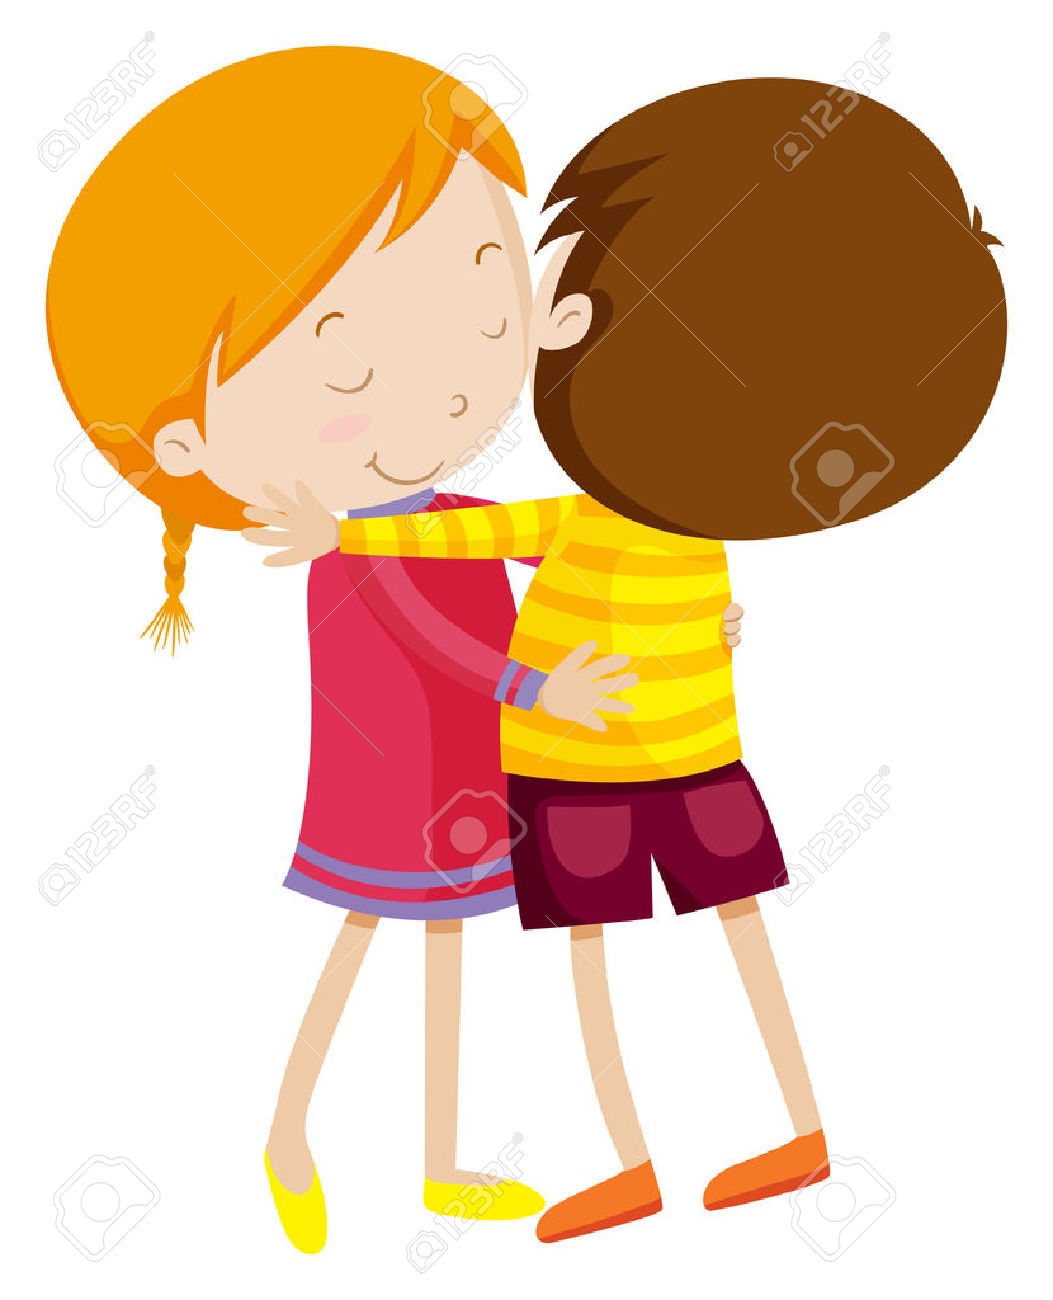 Boy And Girl Hugging Illustration Royalty Free Cliparts, Vectors ... svg black and white